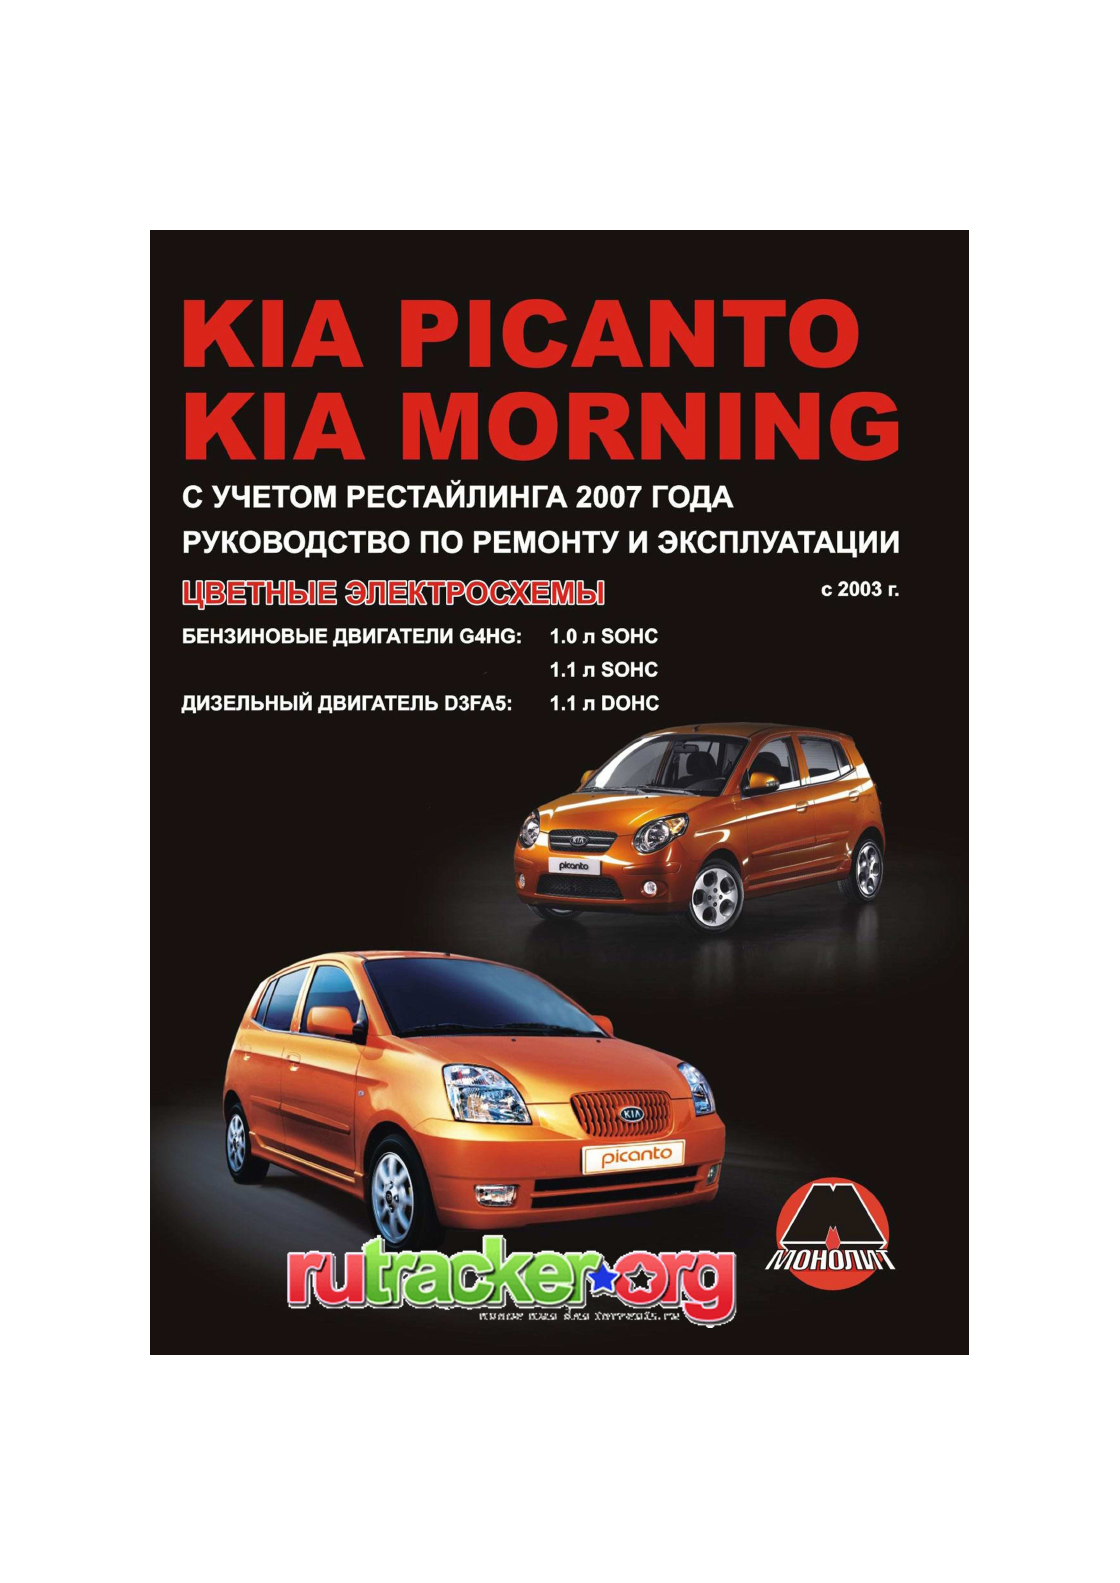 kia picanto workshop manual russian pdf rh manuals co kia picanto workshop manual free download kia picanto 2008 service manual